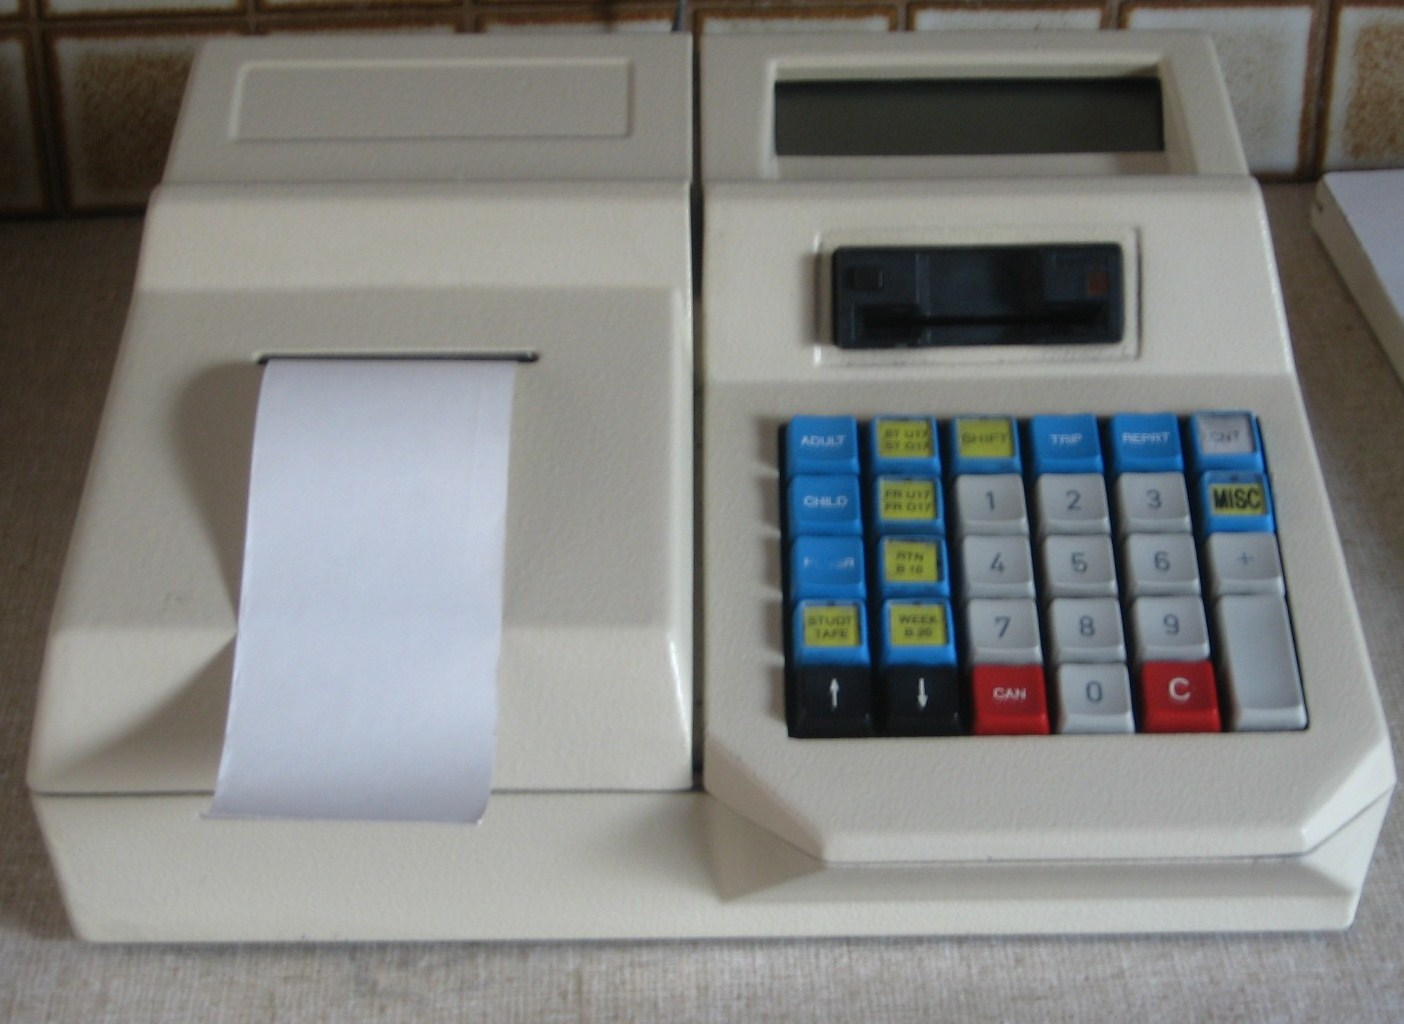 A.E.S (E.R.G) Australian bus ticket machine